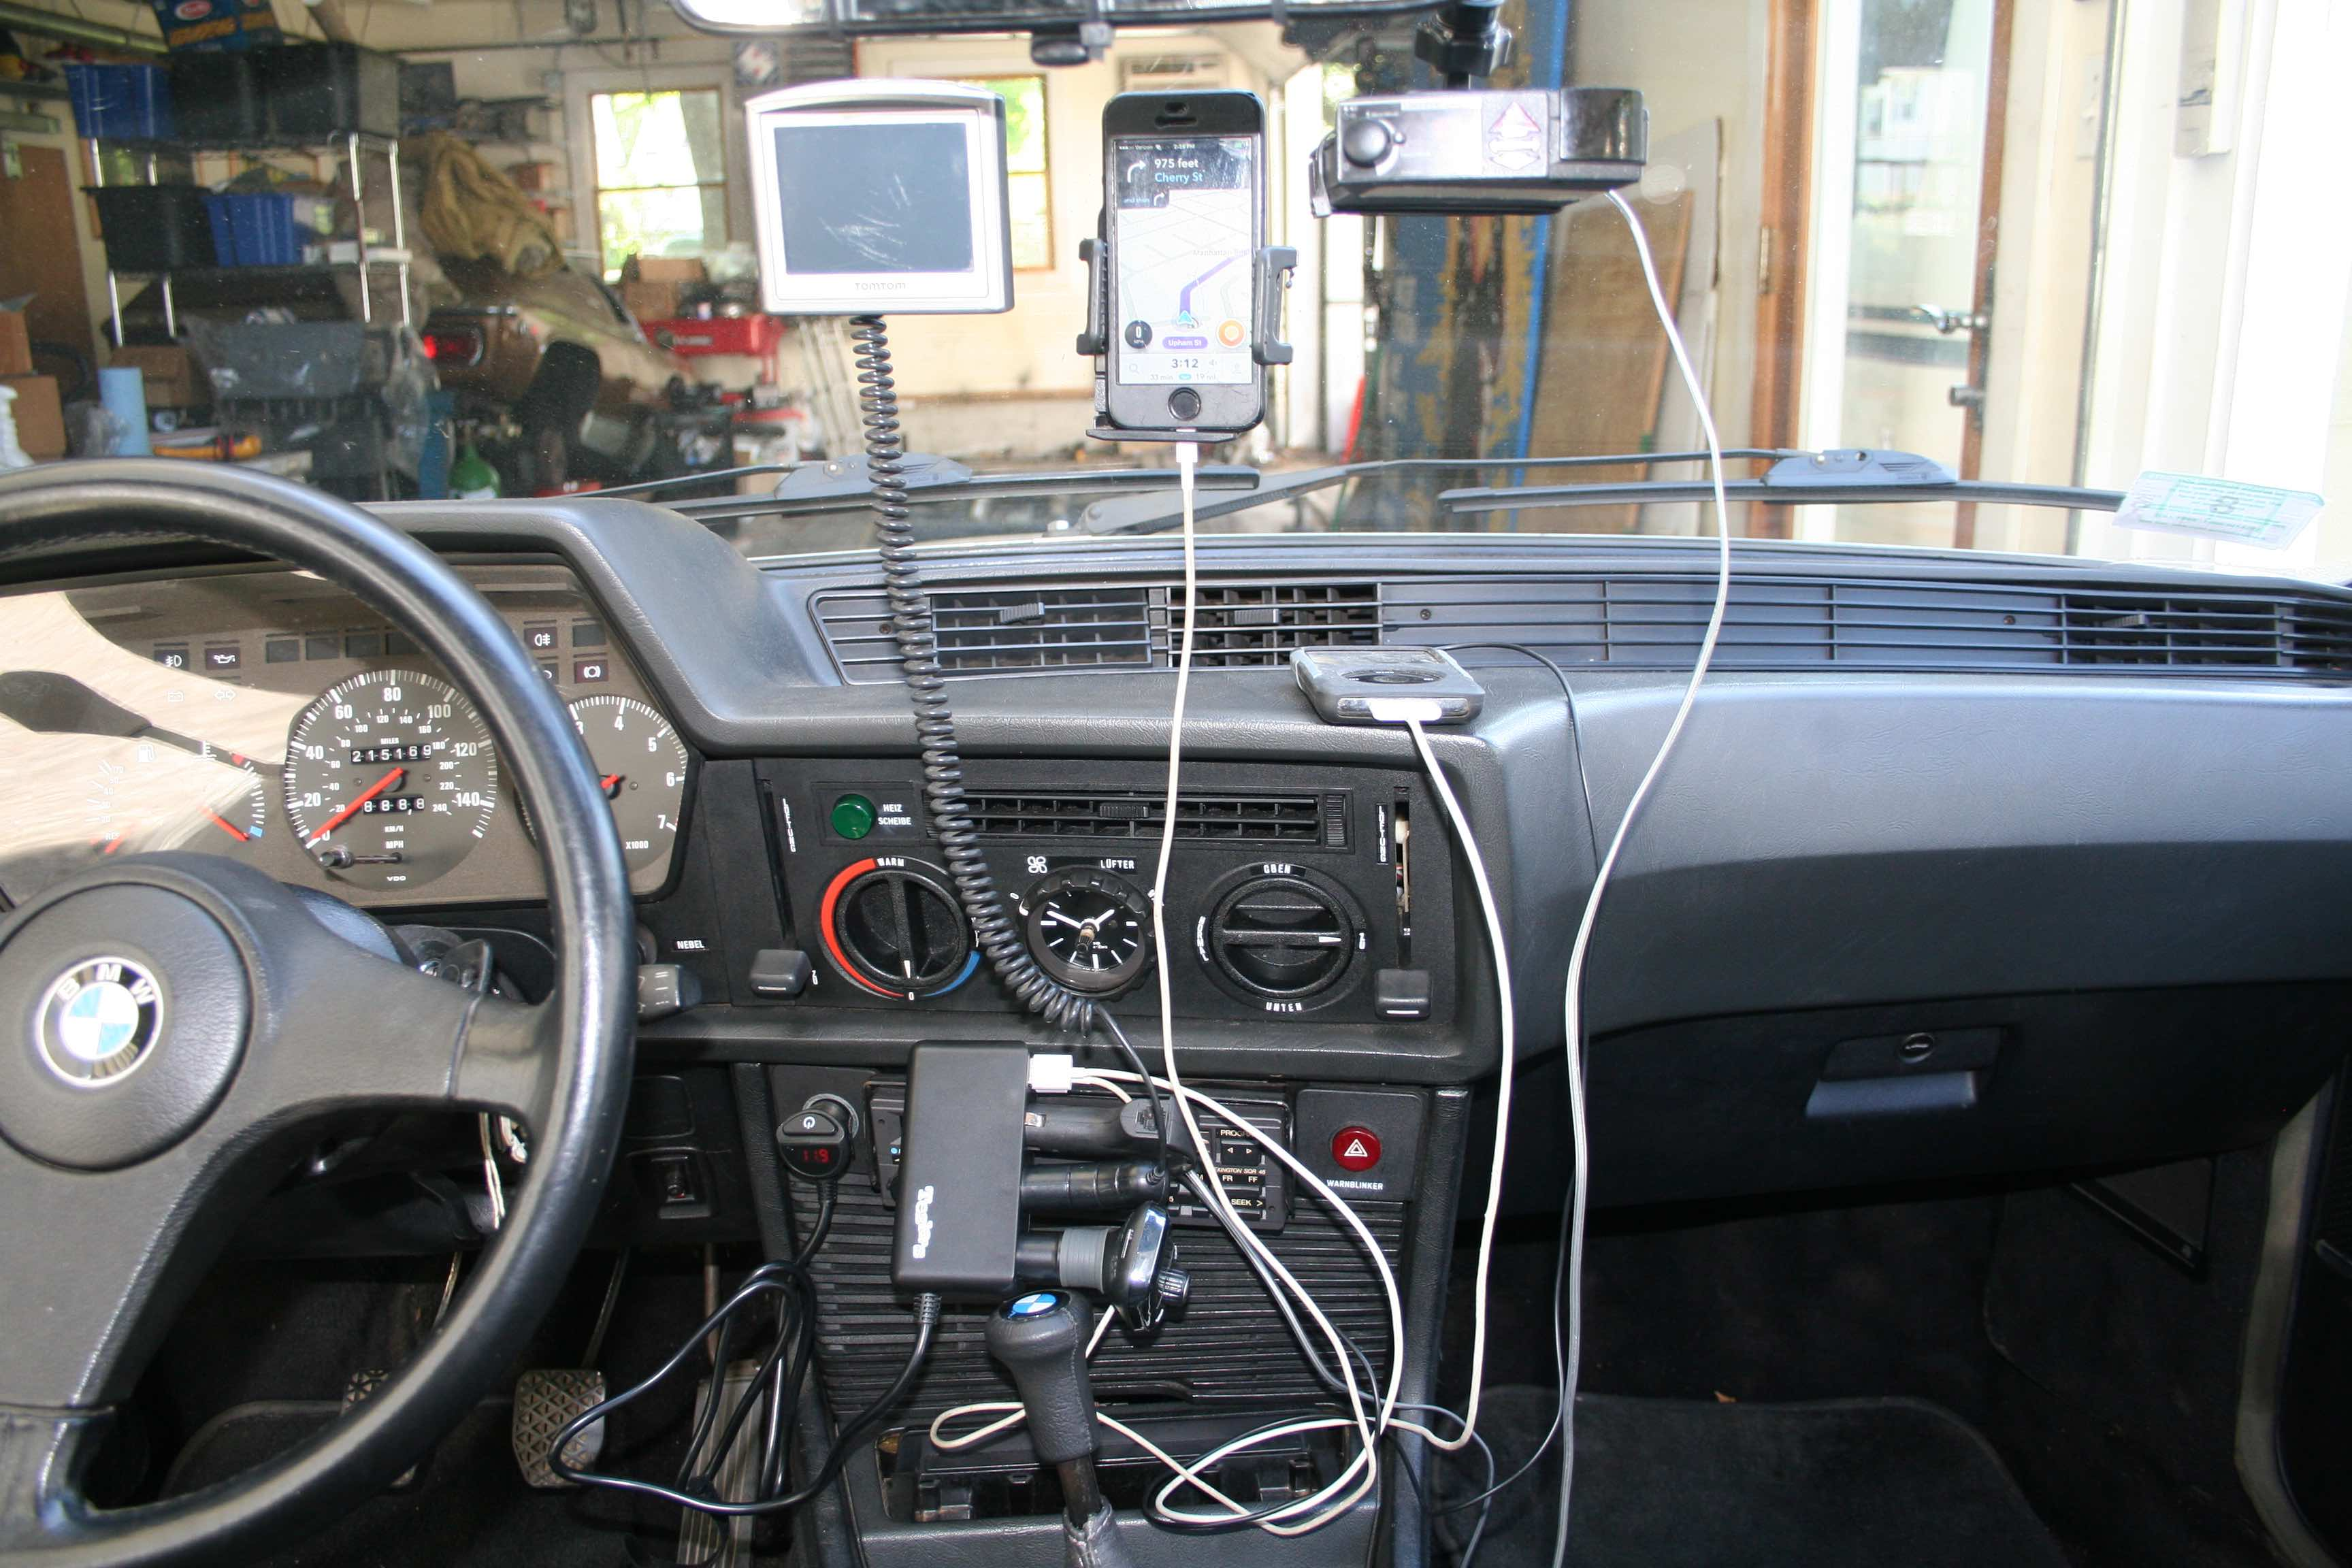 It wasn't that long ago when I had both the GPS and the phone on the windshield, and the power cord configuration literally looked like this (although I'm letting the cigarette lighter adapter box dangle off the dashboard for dramatic effect.